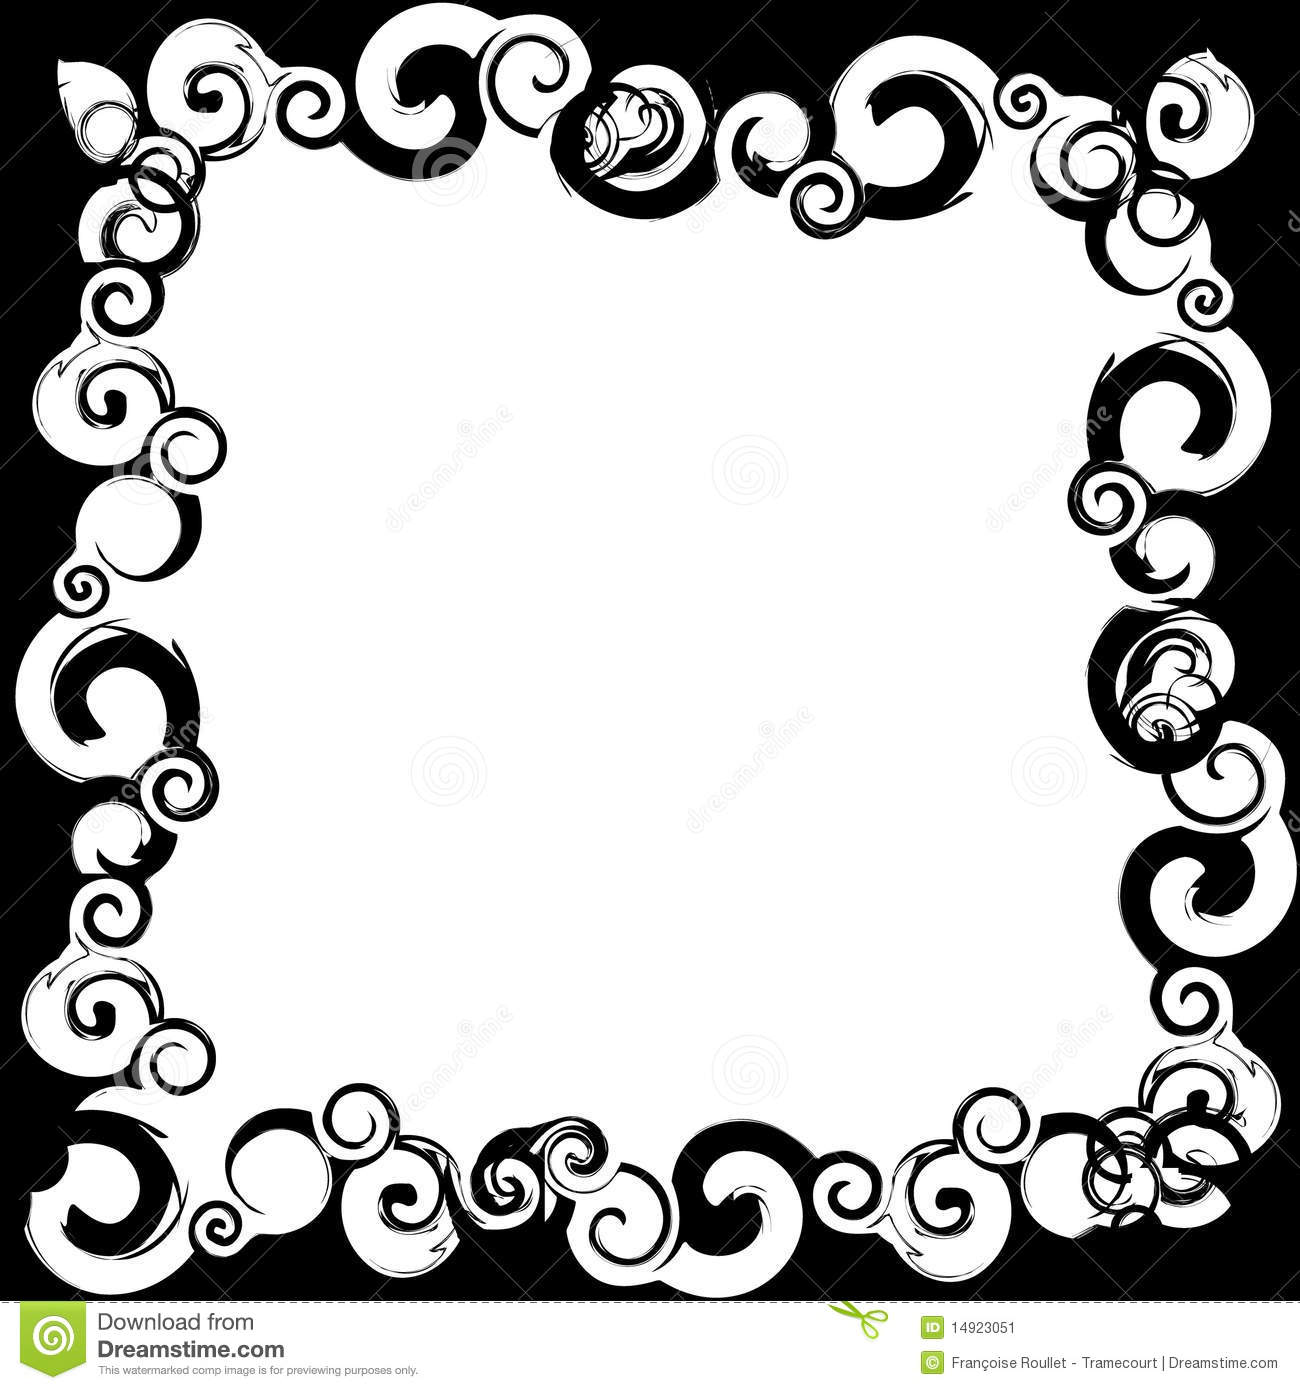 Black white frame stock illustration. Illustration of silhouette ...